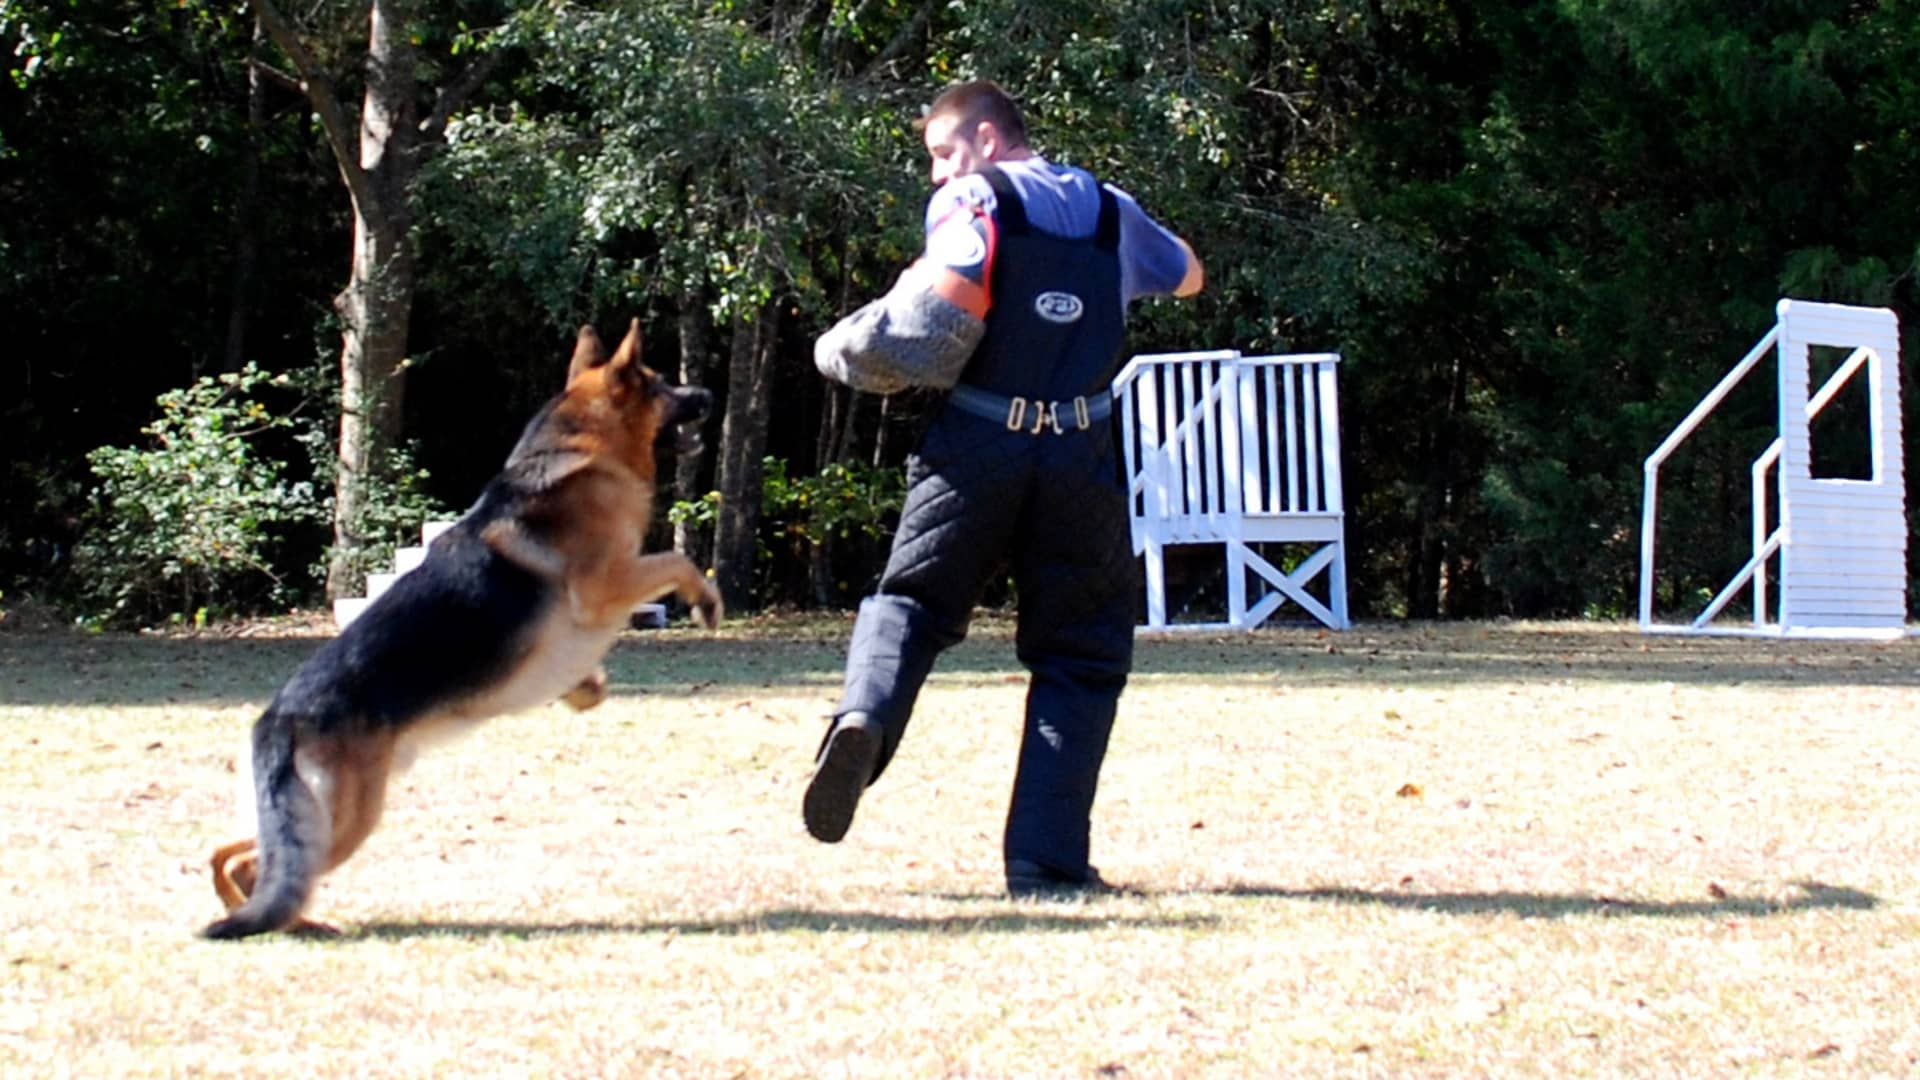 A trainer being chased during an exercise with a Harrsion K-9 protection dog.